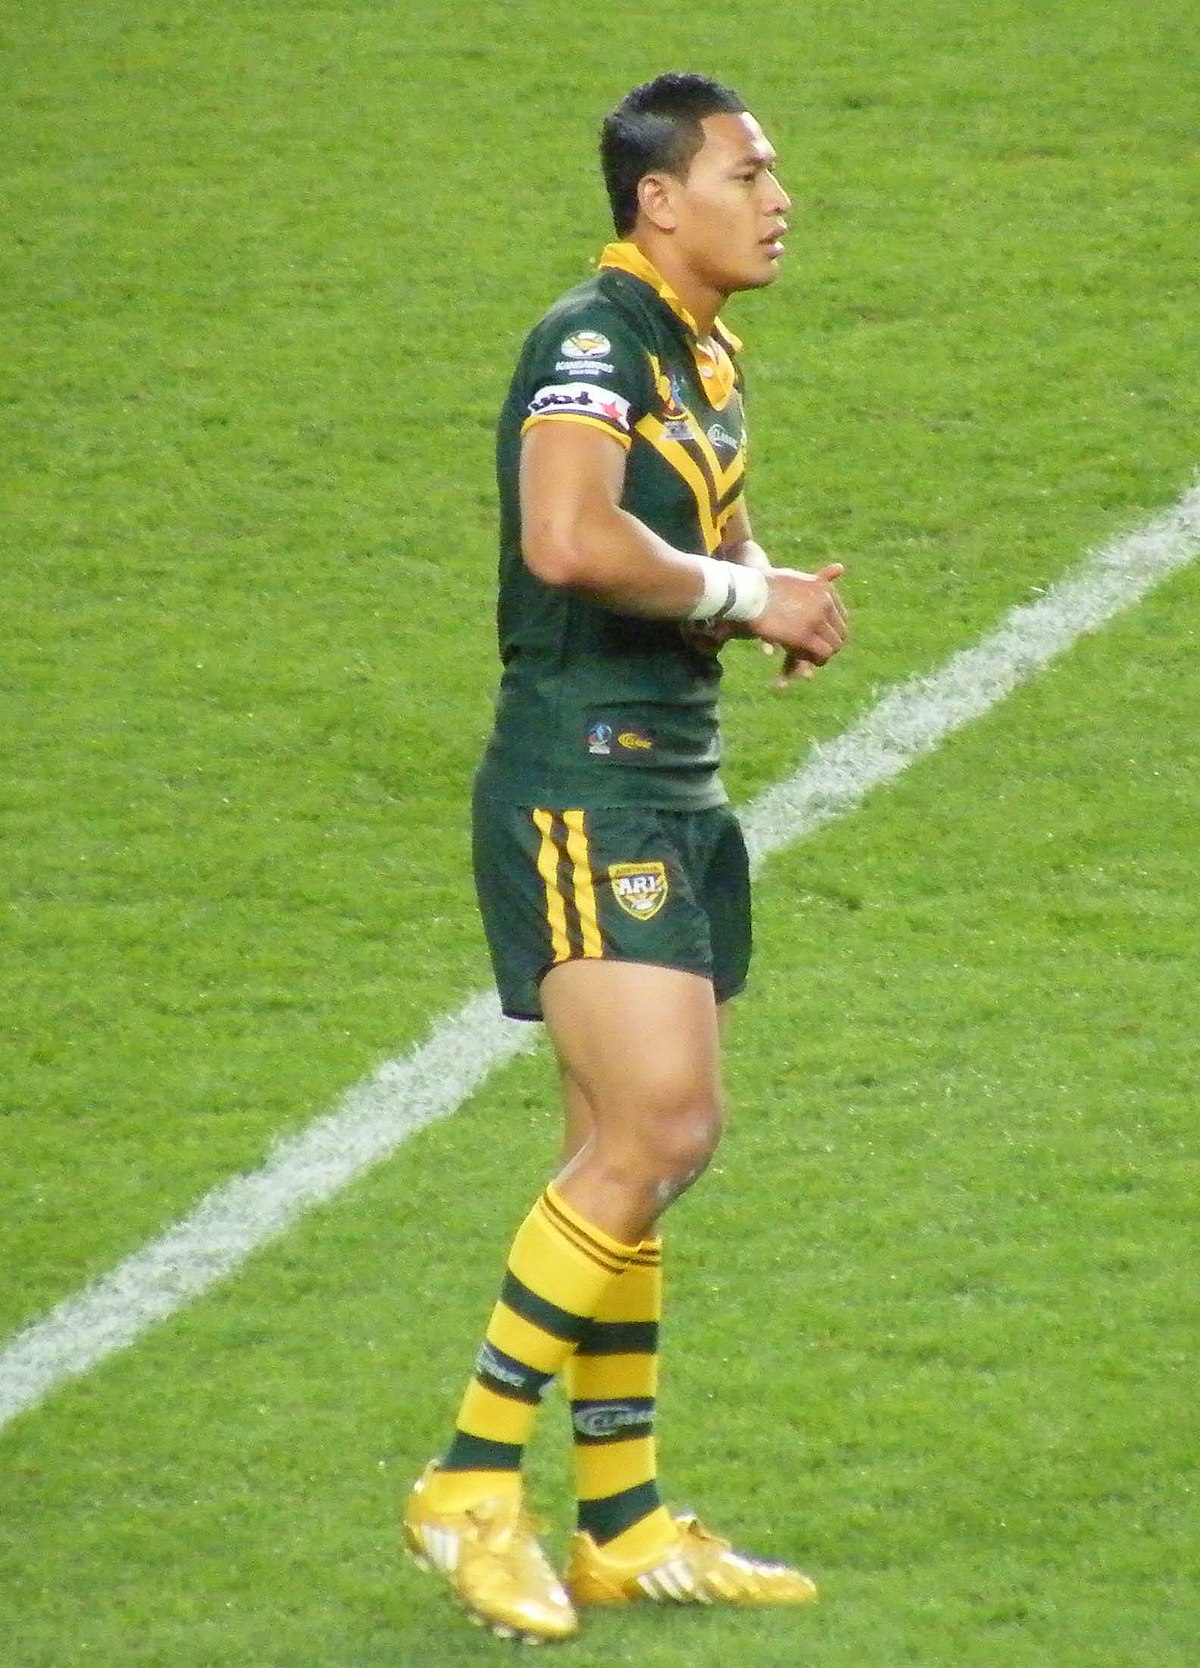 israel folau - photo #25